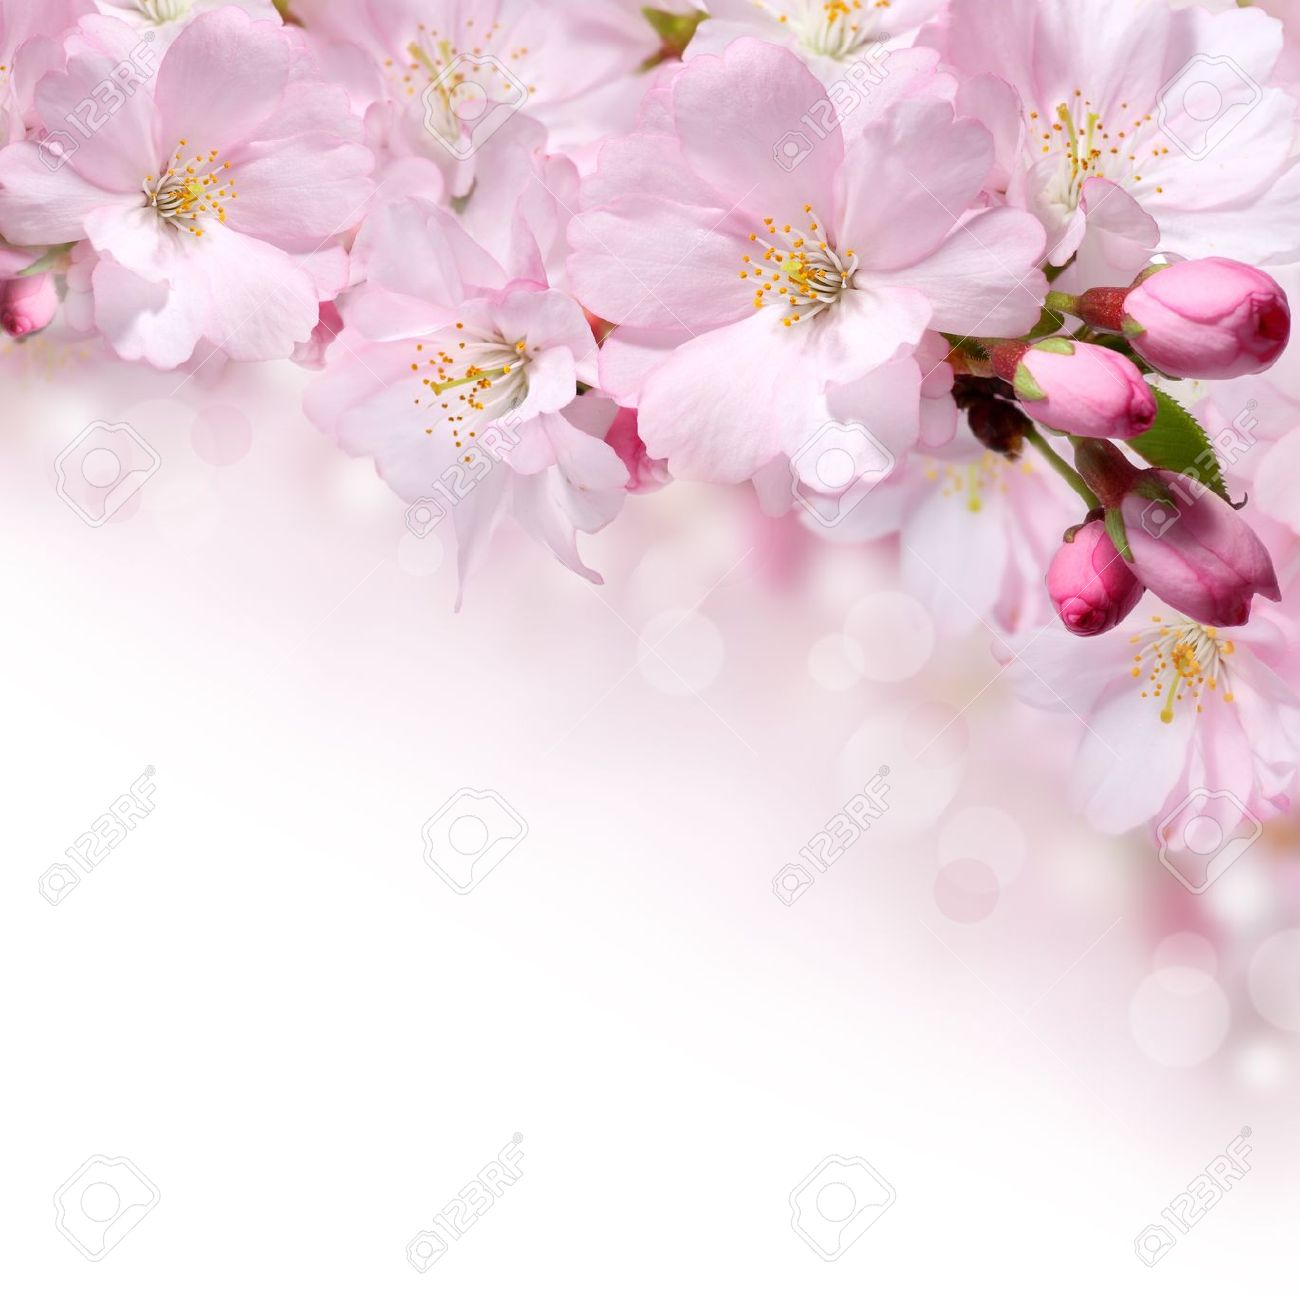 Pink Spring Flowers Design Border Background Stock Photo Picture